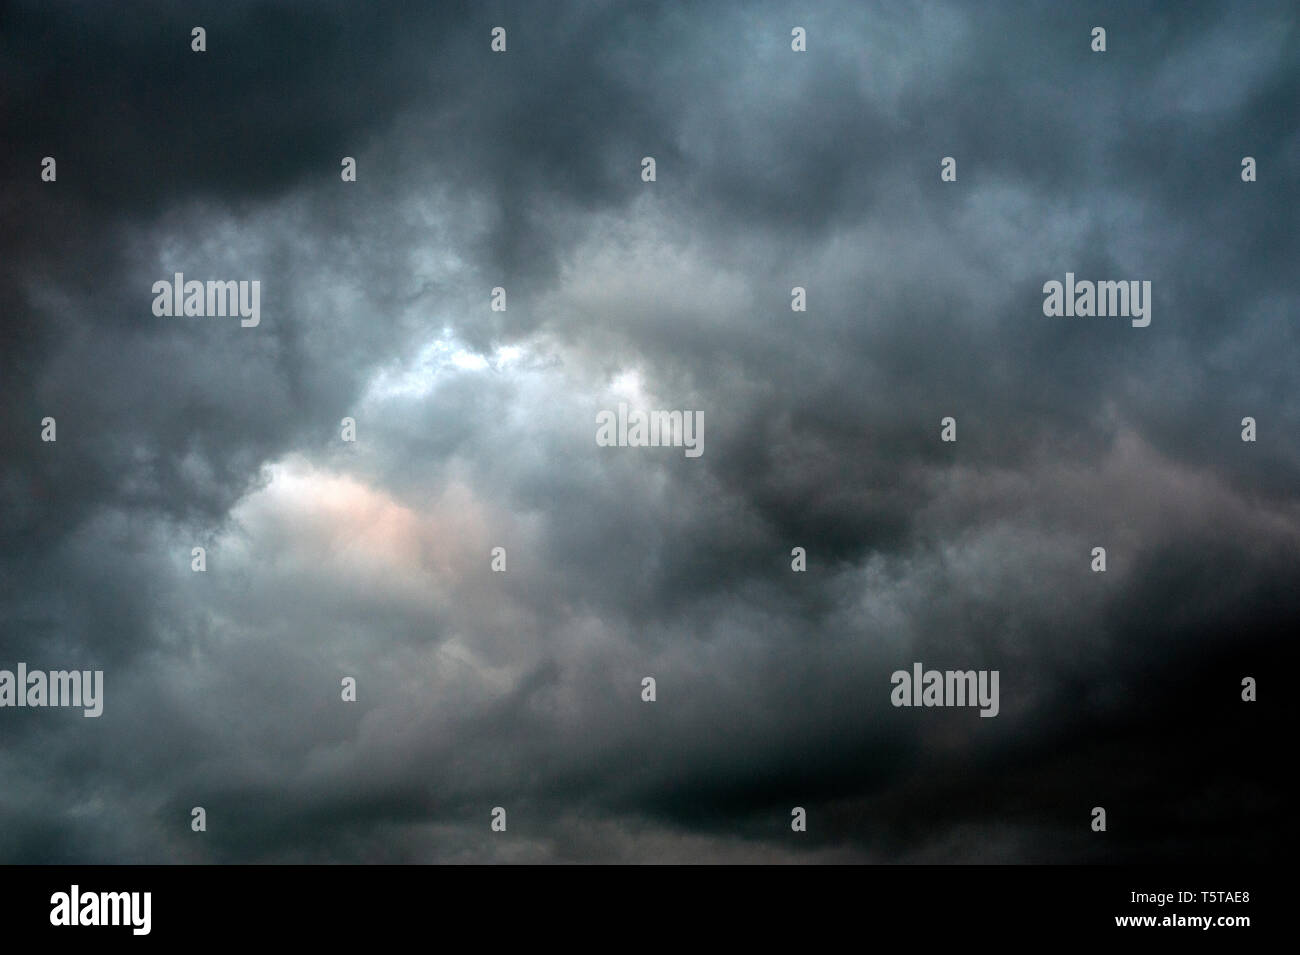 stromy, ominusCumulonimbus clouds with an ominus look - Stock Image